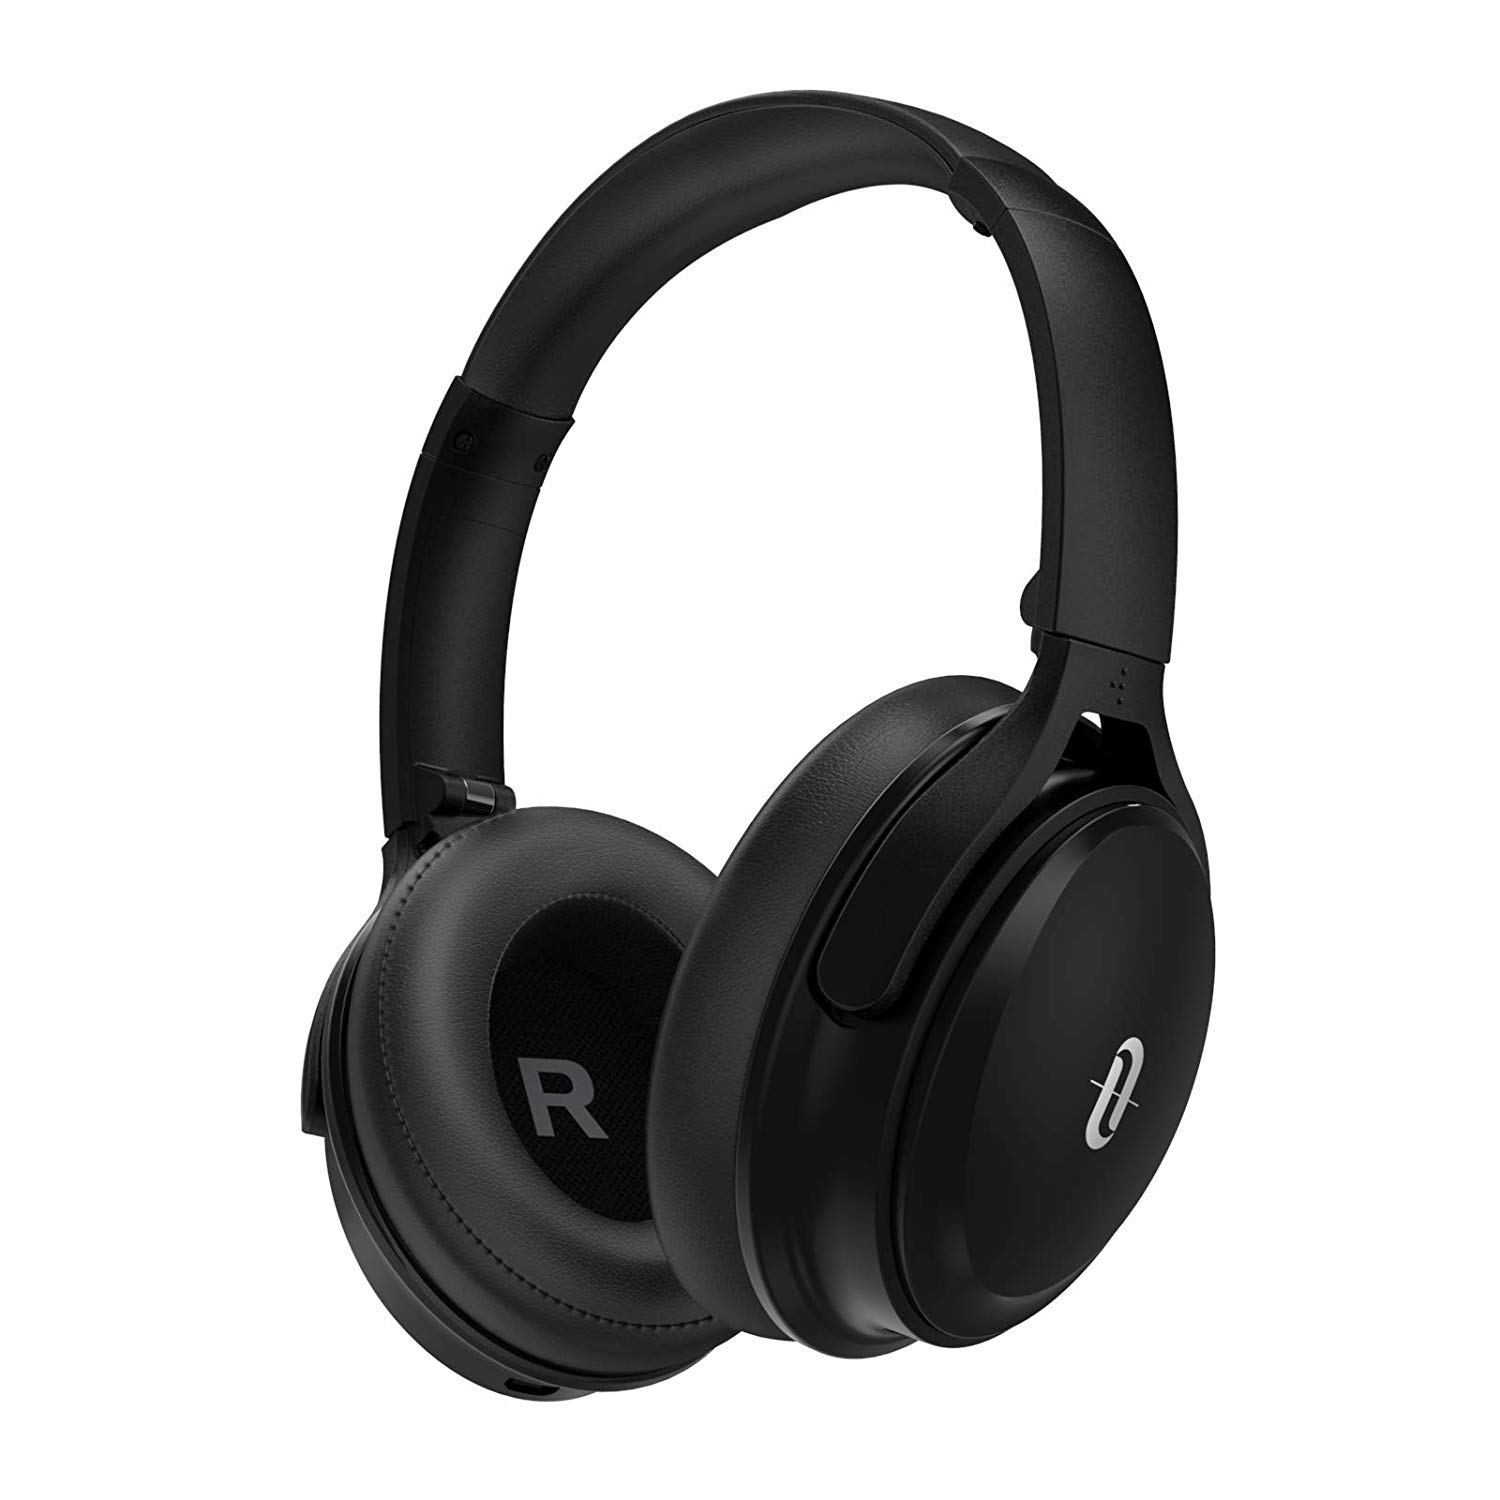 TaoTronics Active Noise Cancelling Headphones [Upgraded] 45H Playtime Bluetooth Headphones Over Ear Headphones Wireless Headphones High Clarity Sound for TV Cellphone